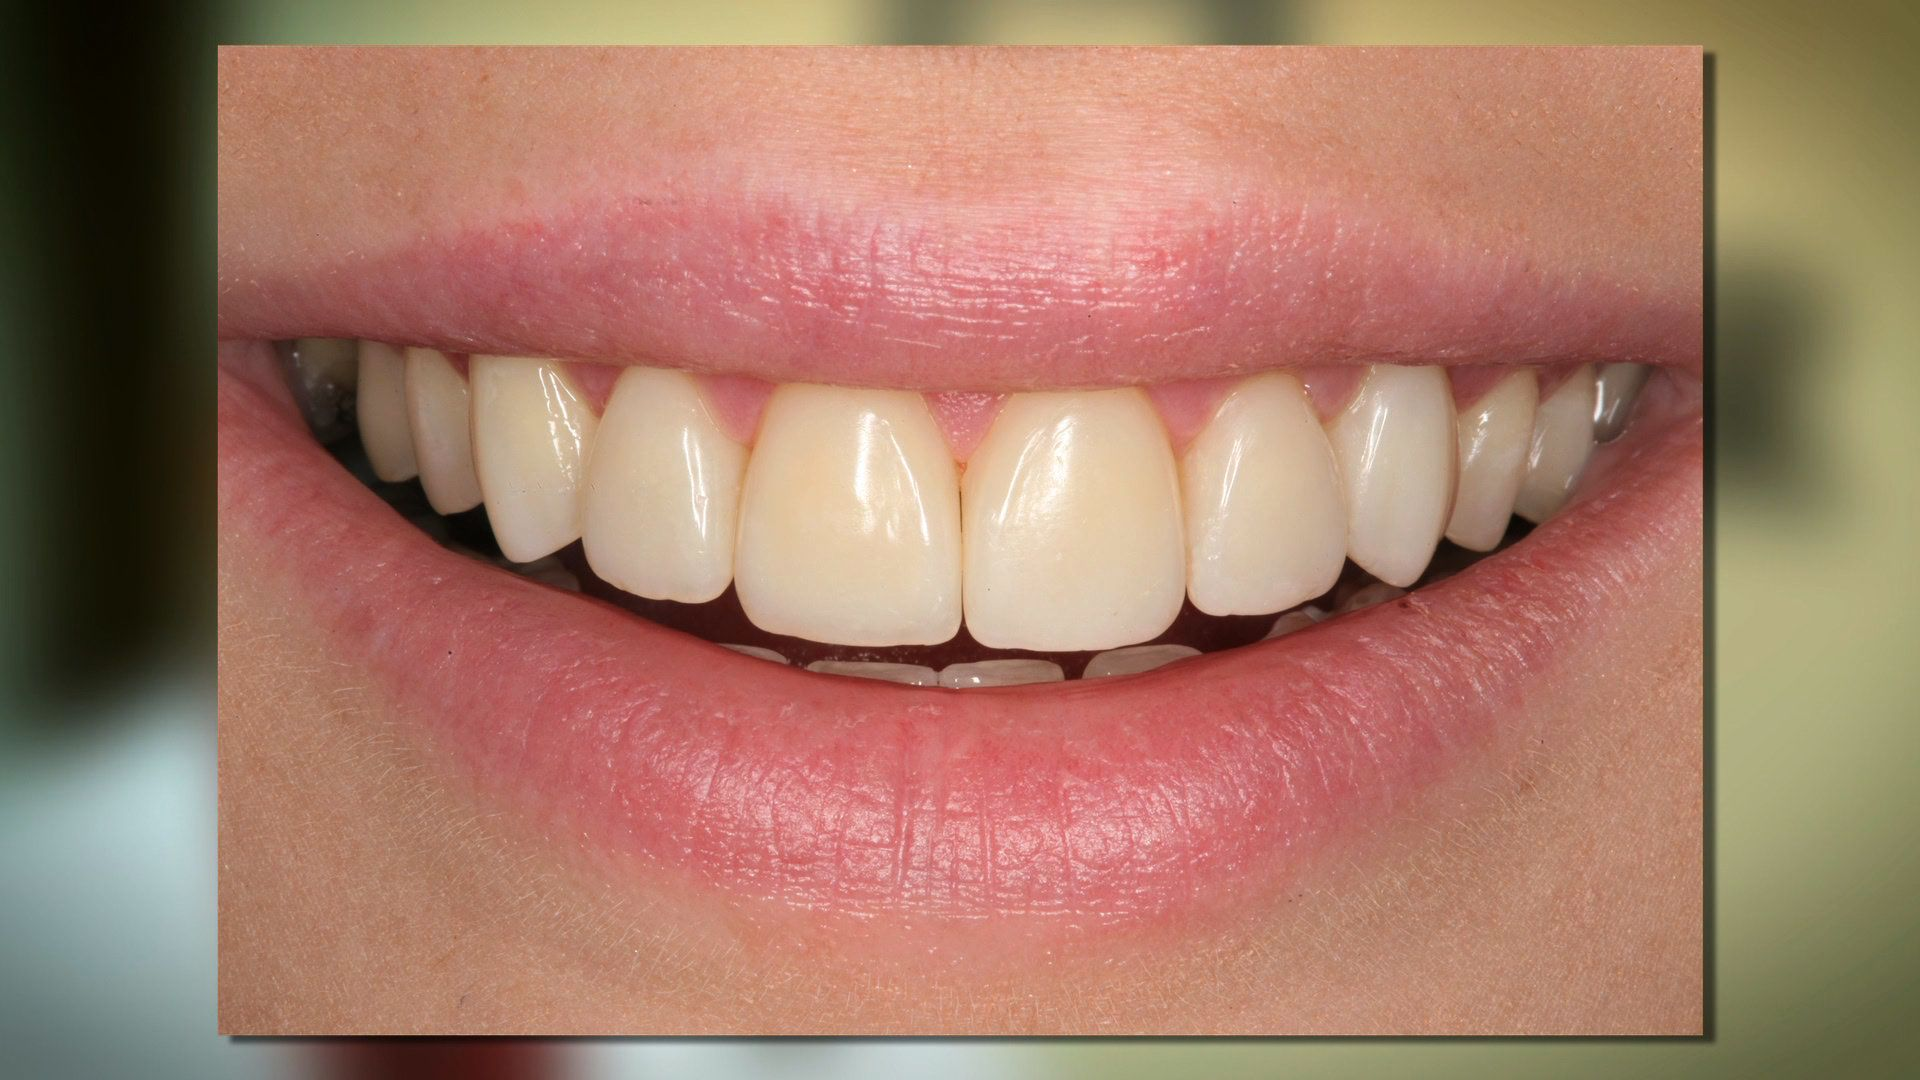 Cover Imperfections in Your Smile with Dental Bonding